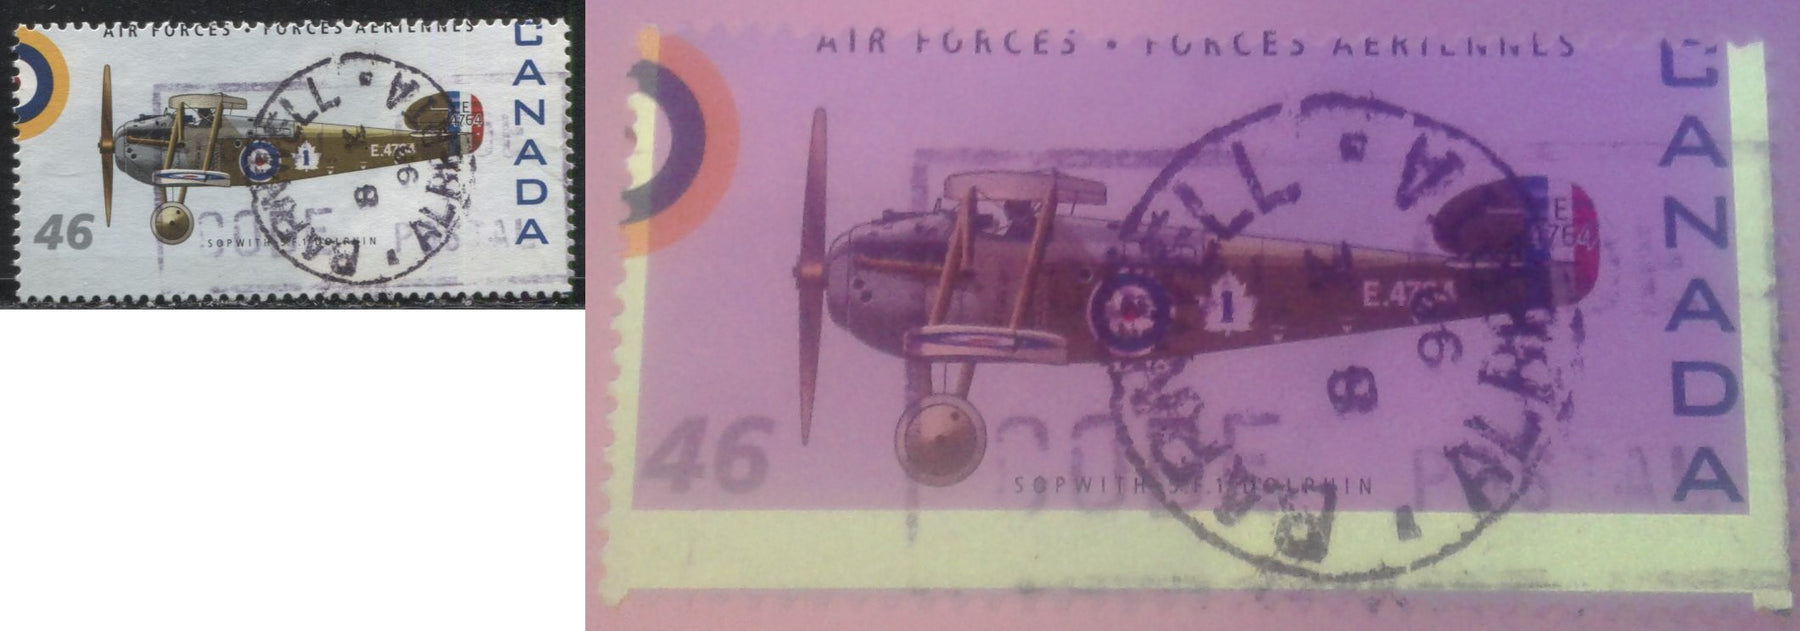 Canada #1808h 46c Multicoloured, Sopwith 5.F.1 Dolphin, 1999 Canadian Air Forces Issue a Very Fine Used Single Showing a Significant Misperf, Resulting in a 3-Bar Tag Error